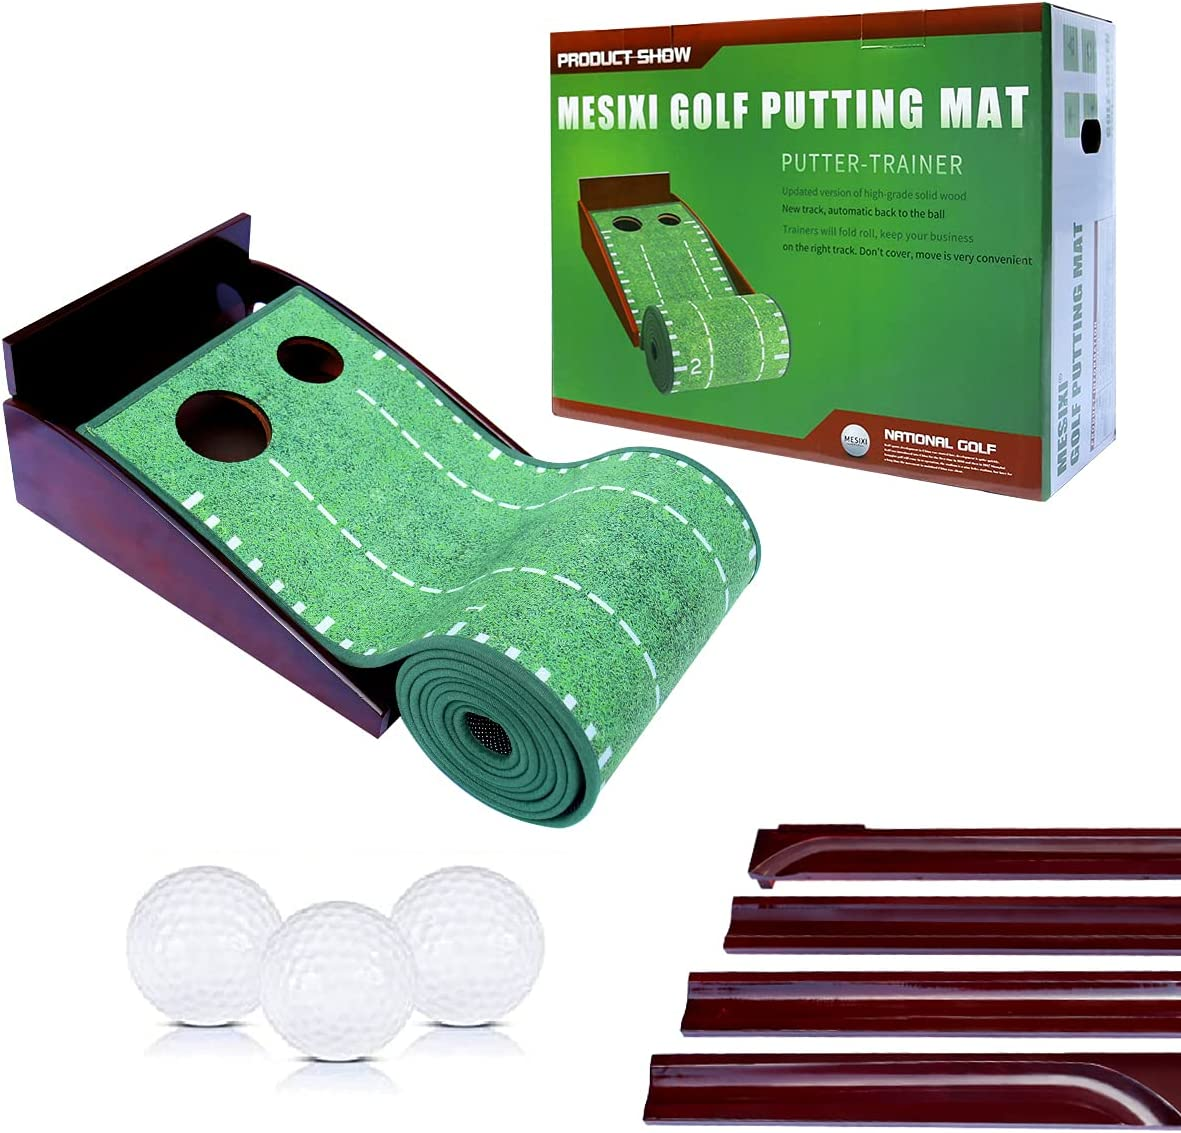 MESIXI Wood Golf Putting Mat Green with Auto Ball Return System Portable Mini Golf Practice Training Aid Equipment Game and Golf Gifts for Men Home Office Backyard Indoor Golf Outdoor Use